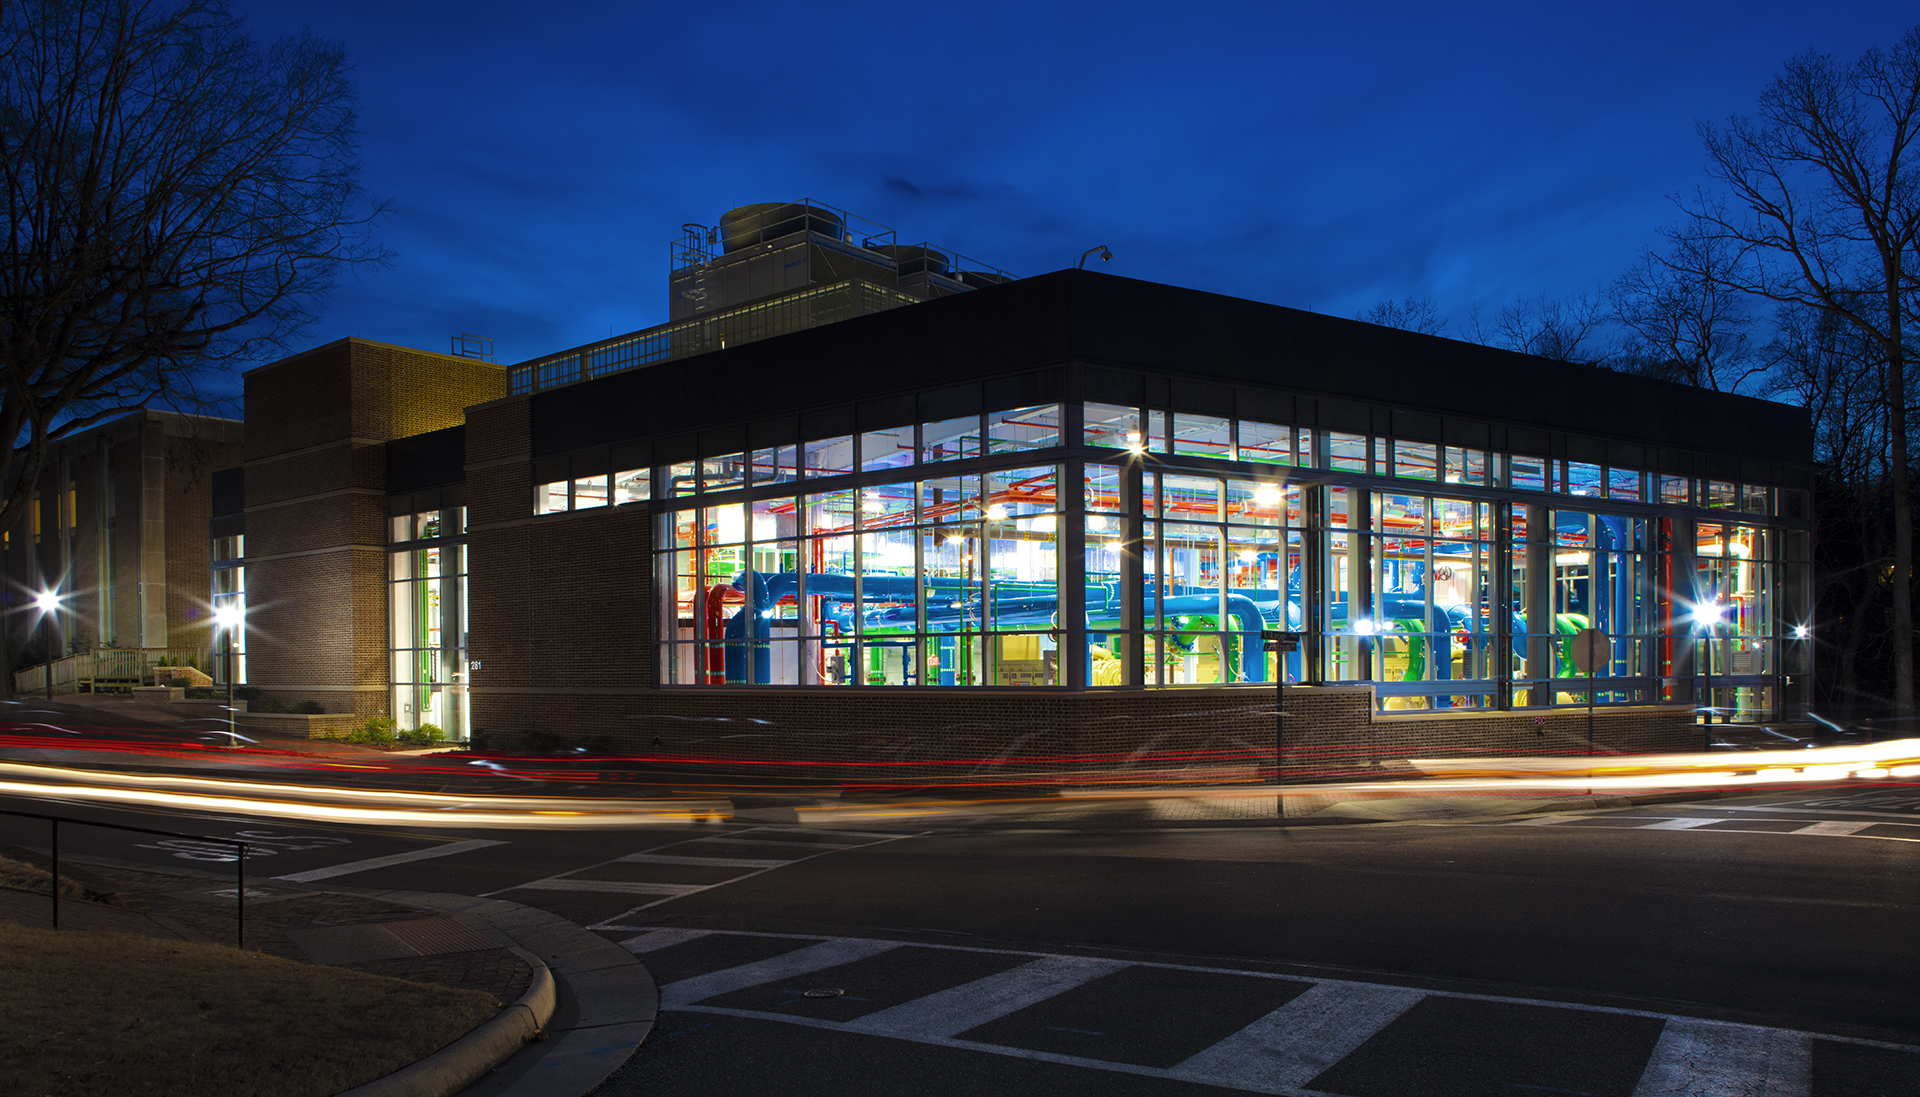 exterior at night with lights shining from inside